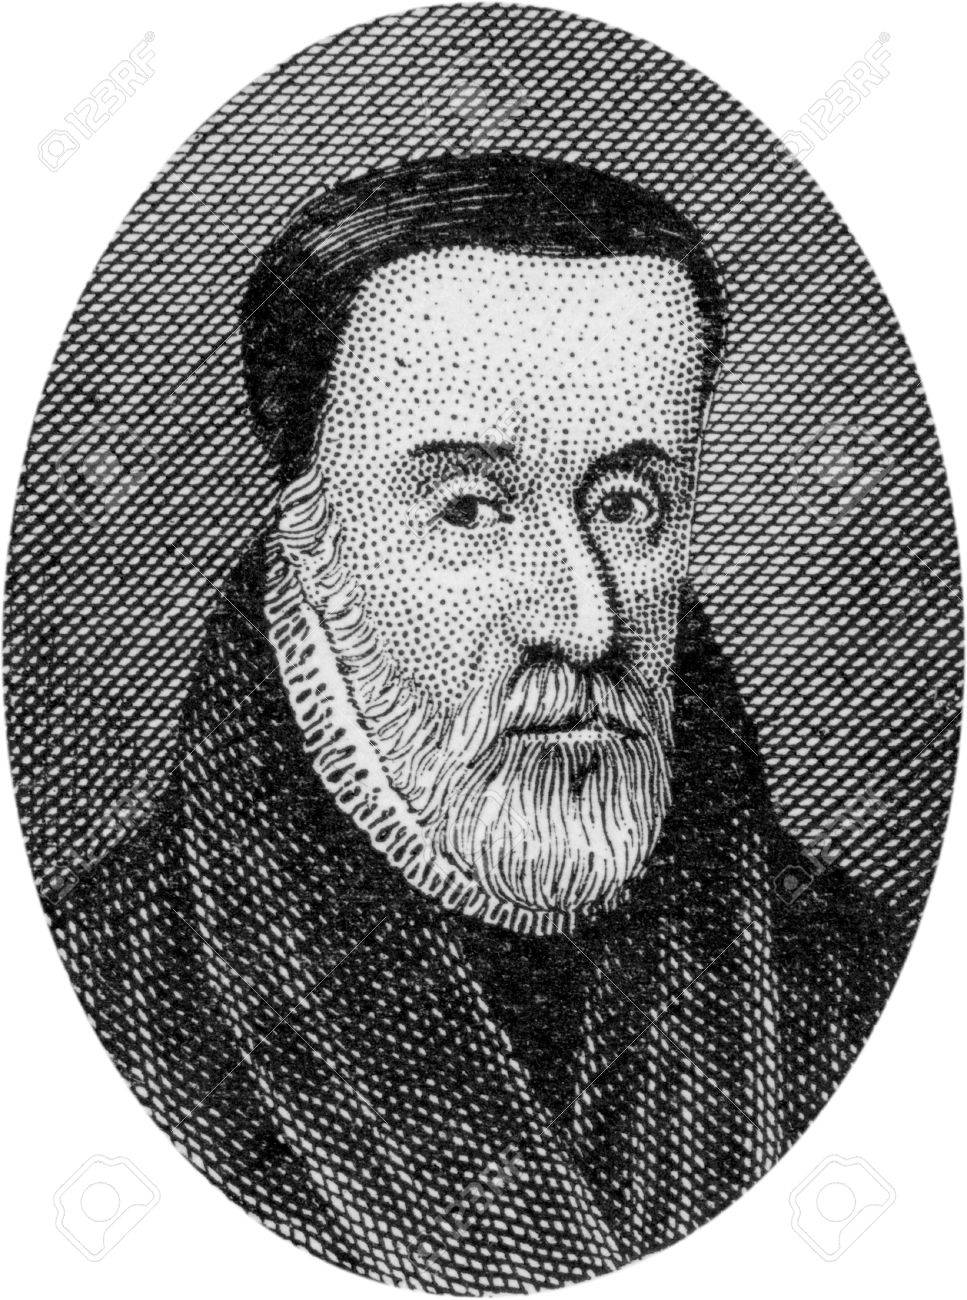 Engraving of William Tyndale, 1484 - 1536; English Bible Translator and  Reformer, Martyred